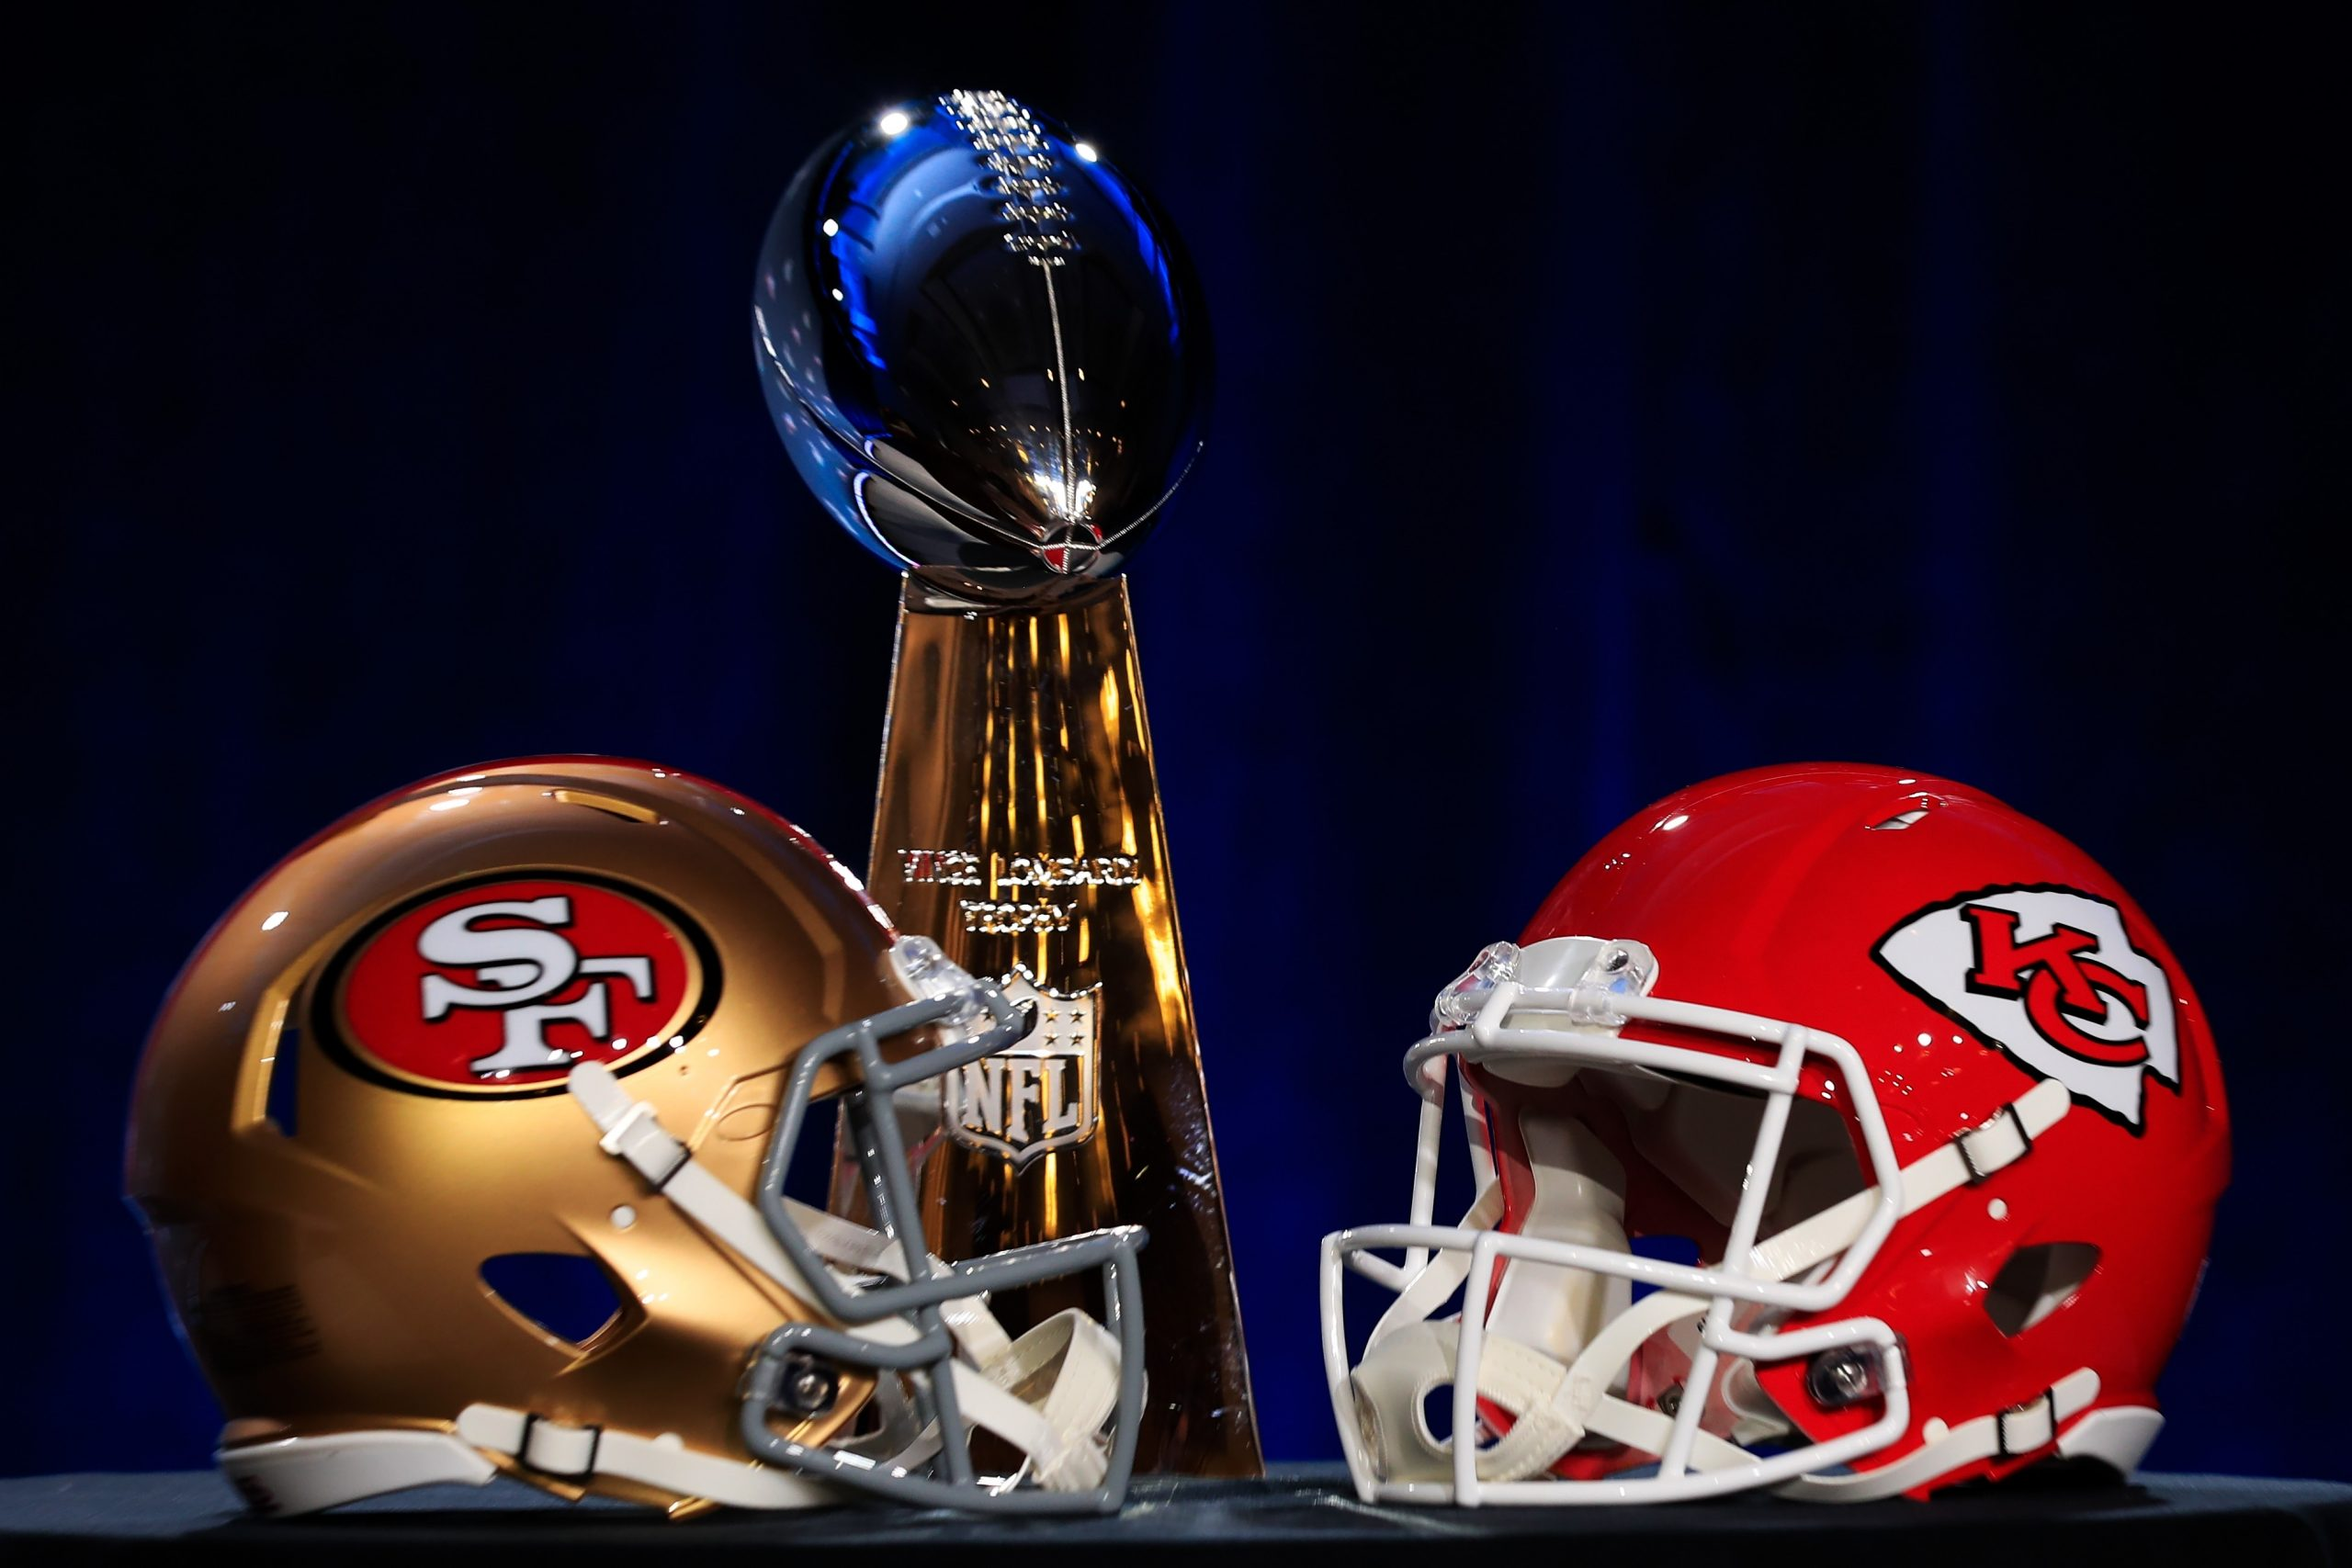 Super Bowl Liv Live Blog: Real-Time Updates From The 49Ers with regard to Super Bowl Time Miami